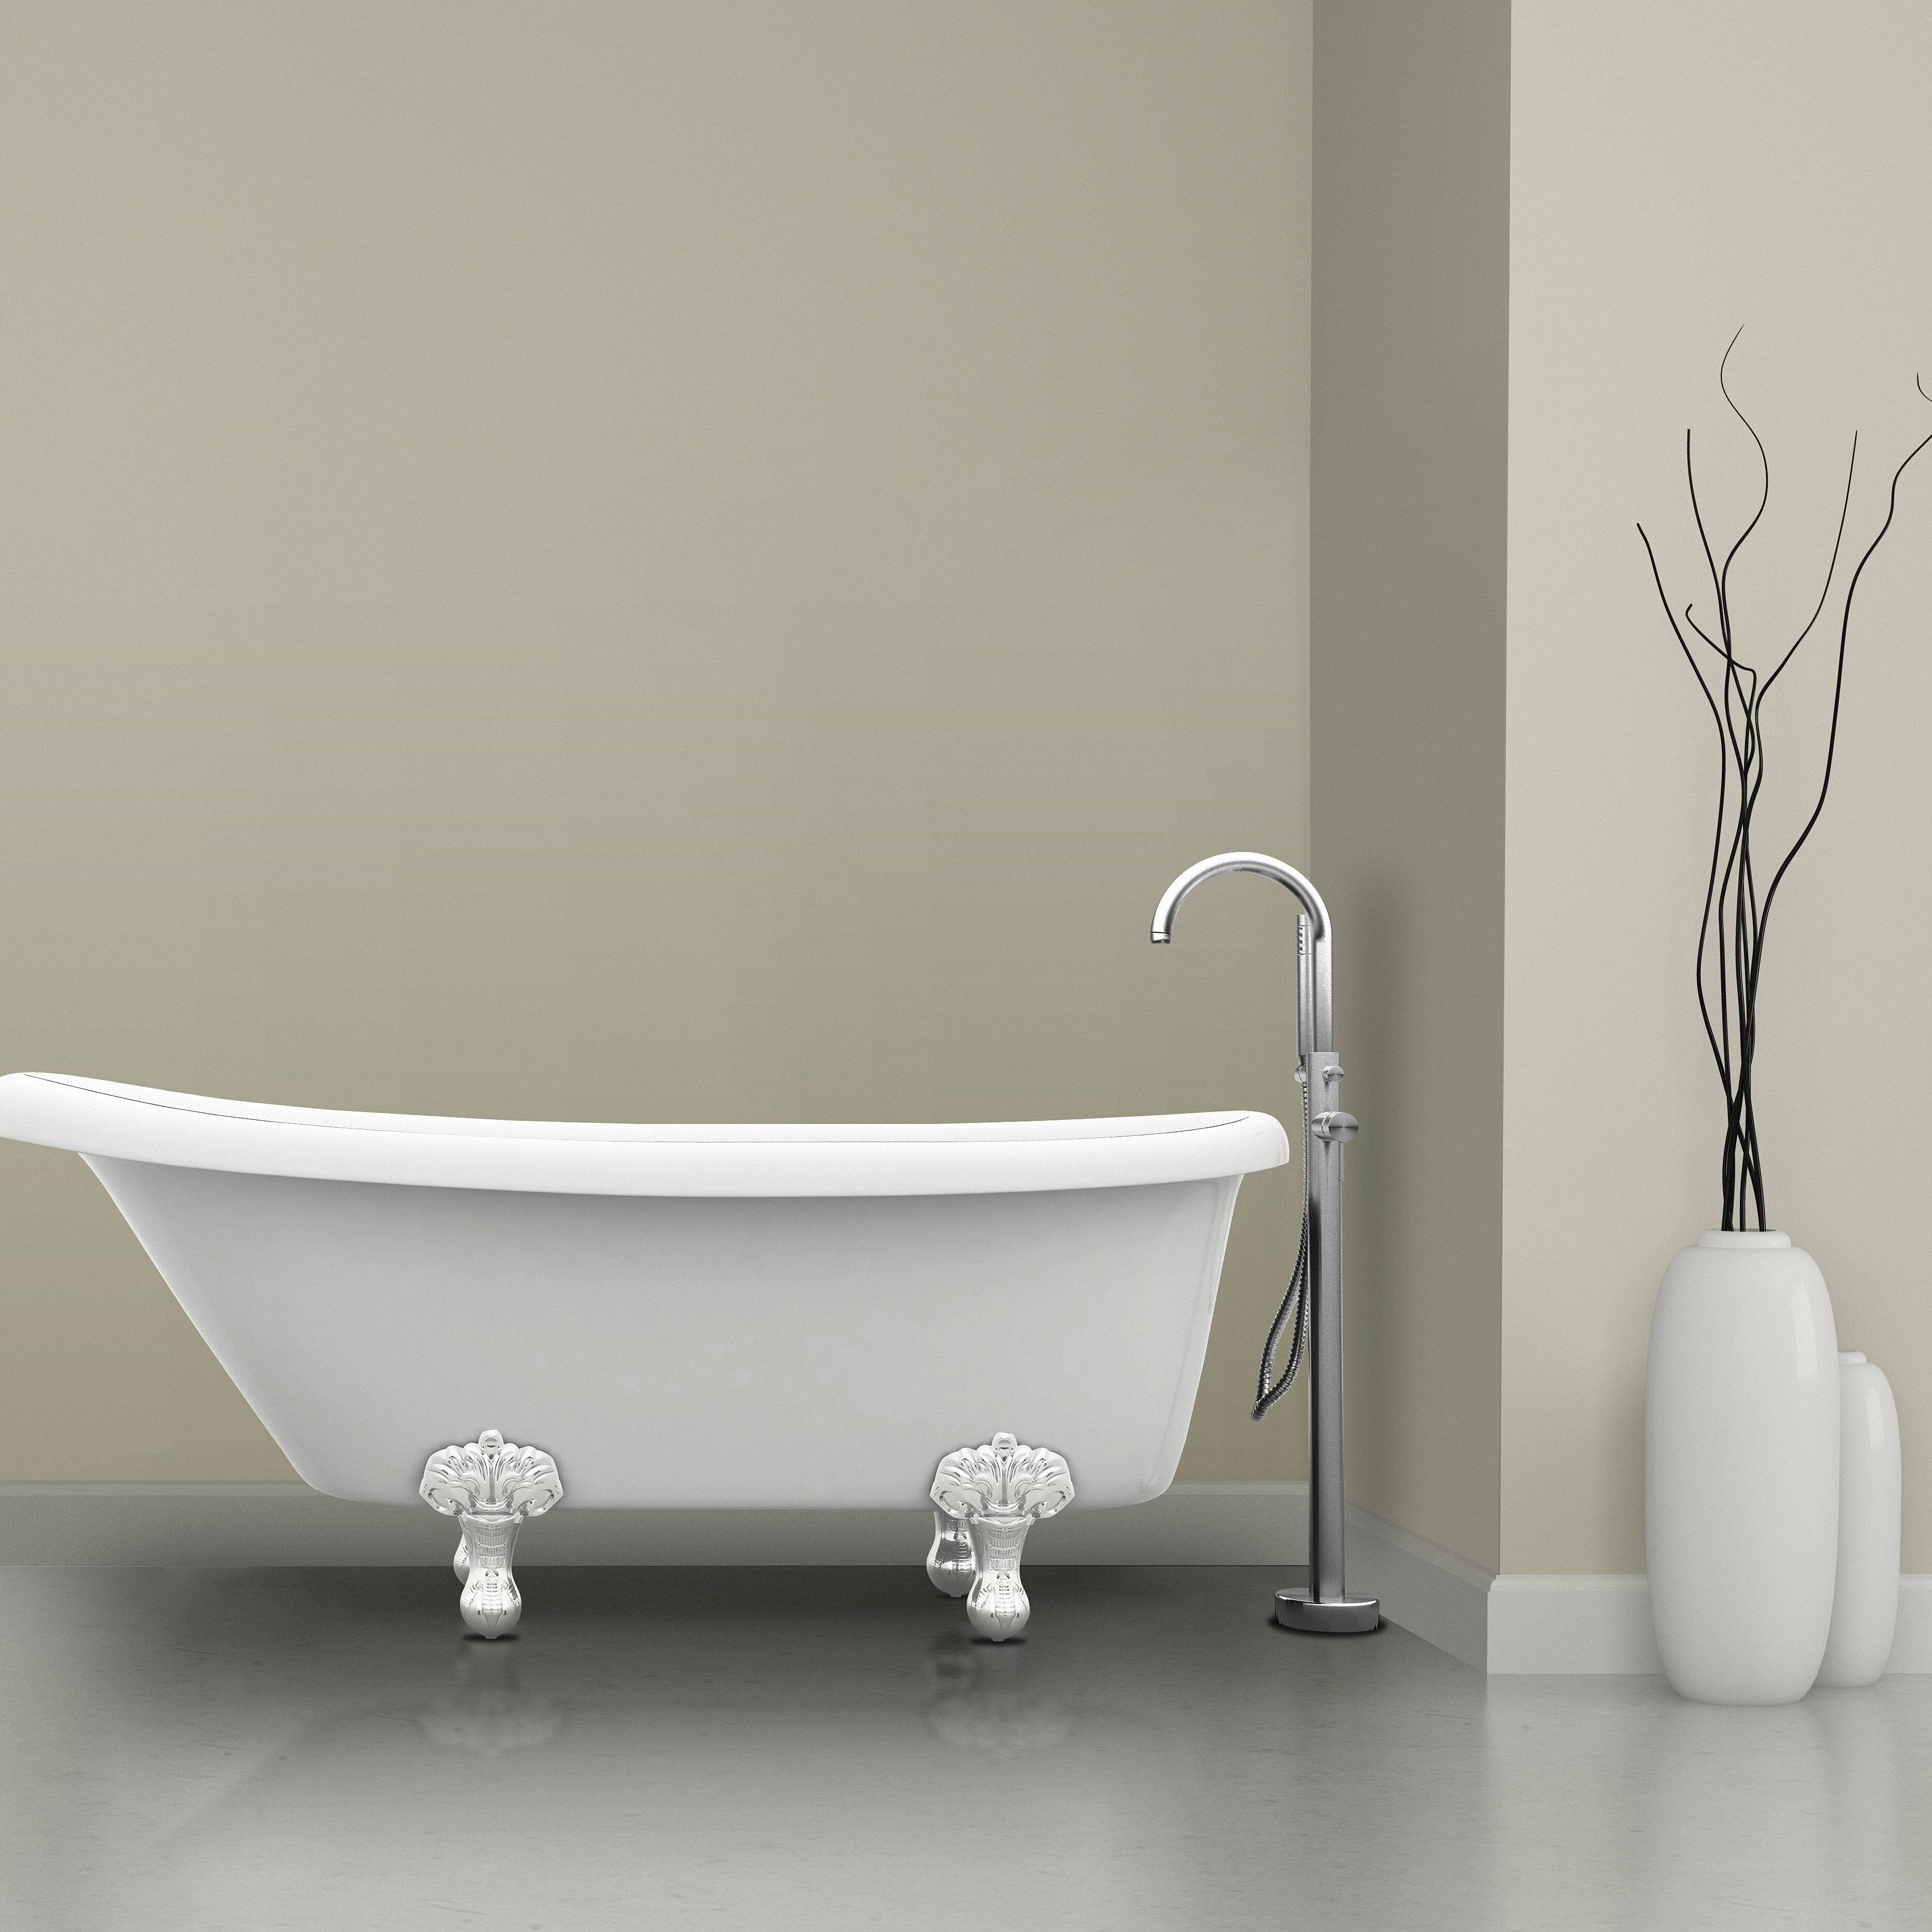 Ancona Prima Single Handle Floor Mount Bathtub Faucet with Shower ...